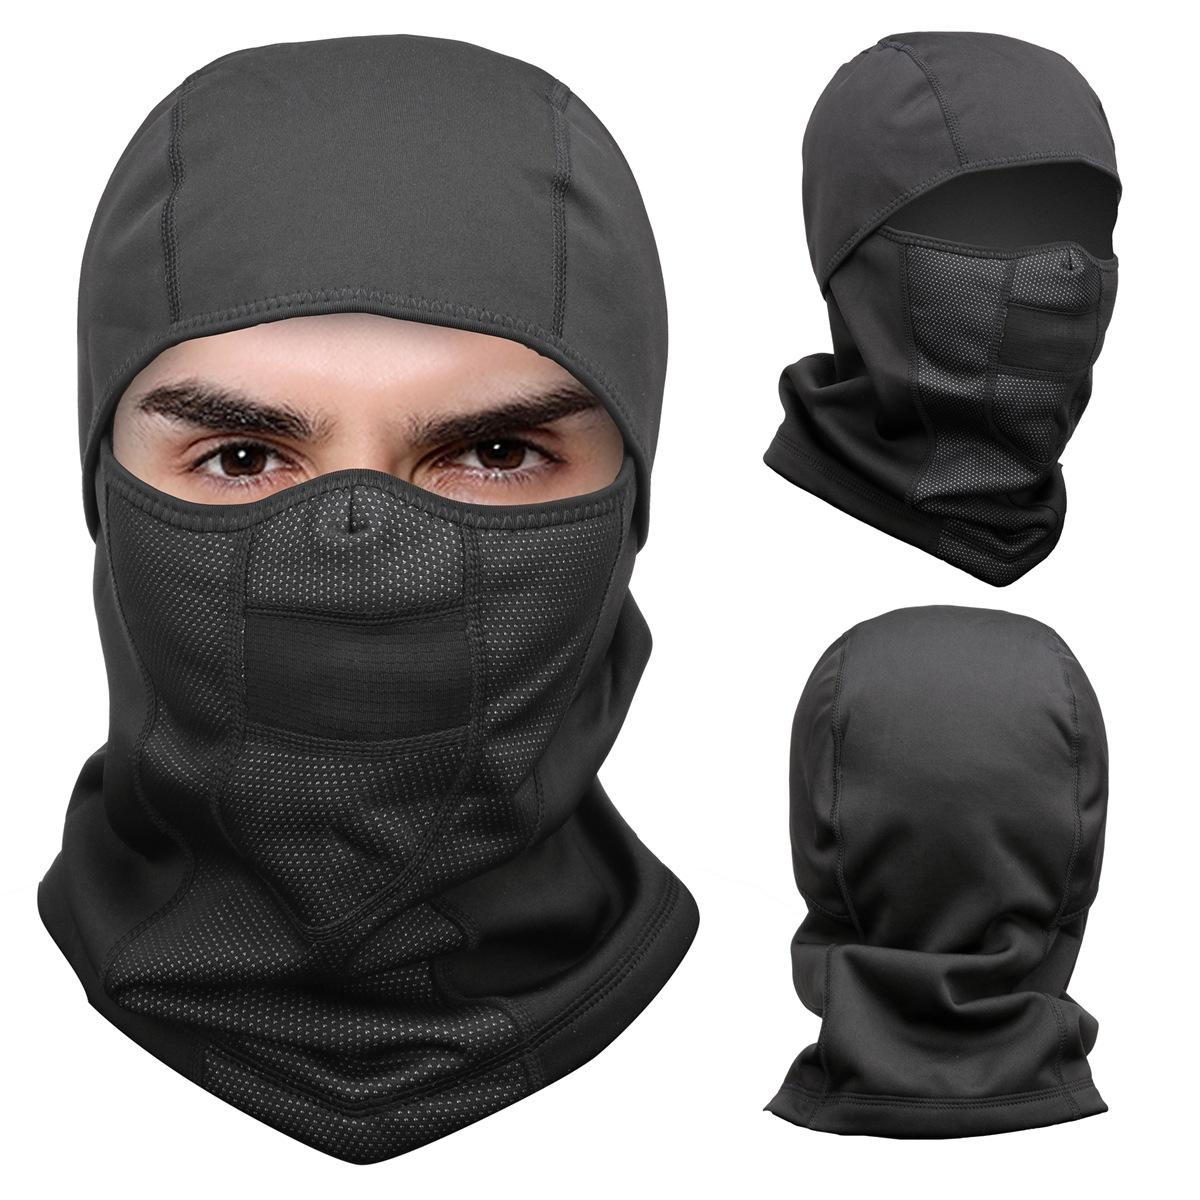 2e65452554d27 Details about Balaclava Fleece Hood   Windproof Ski Mask - Extreme Cold  Weather Face Mask